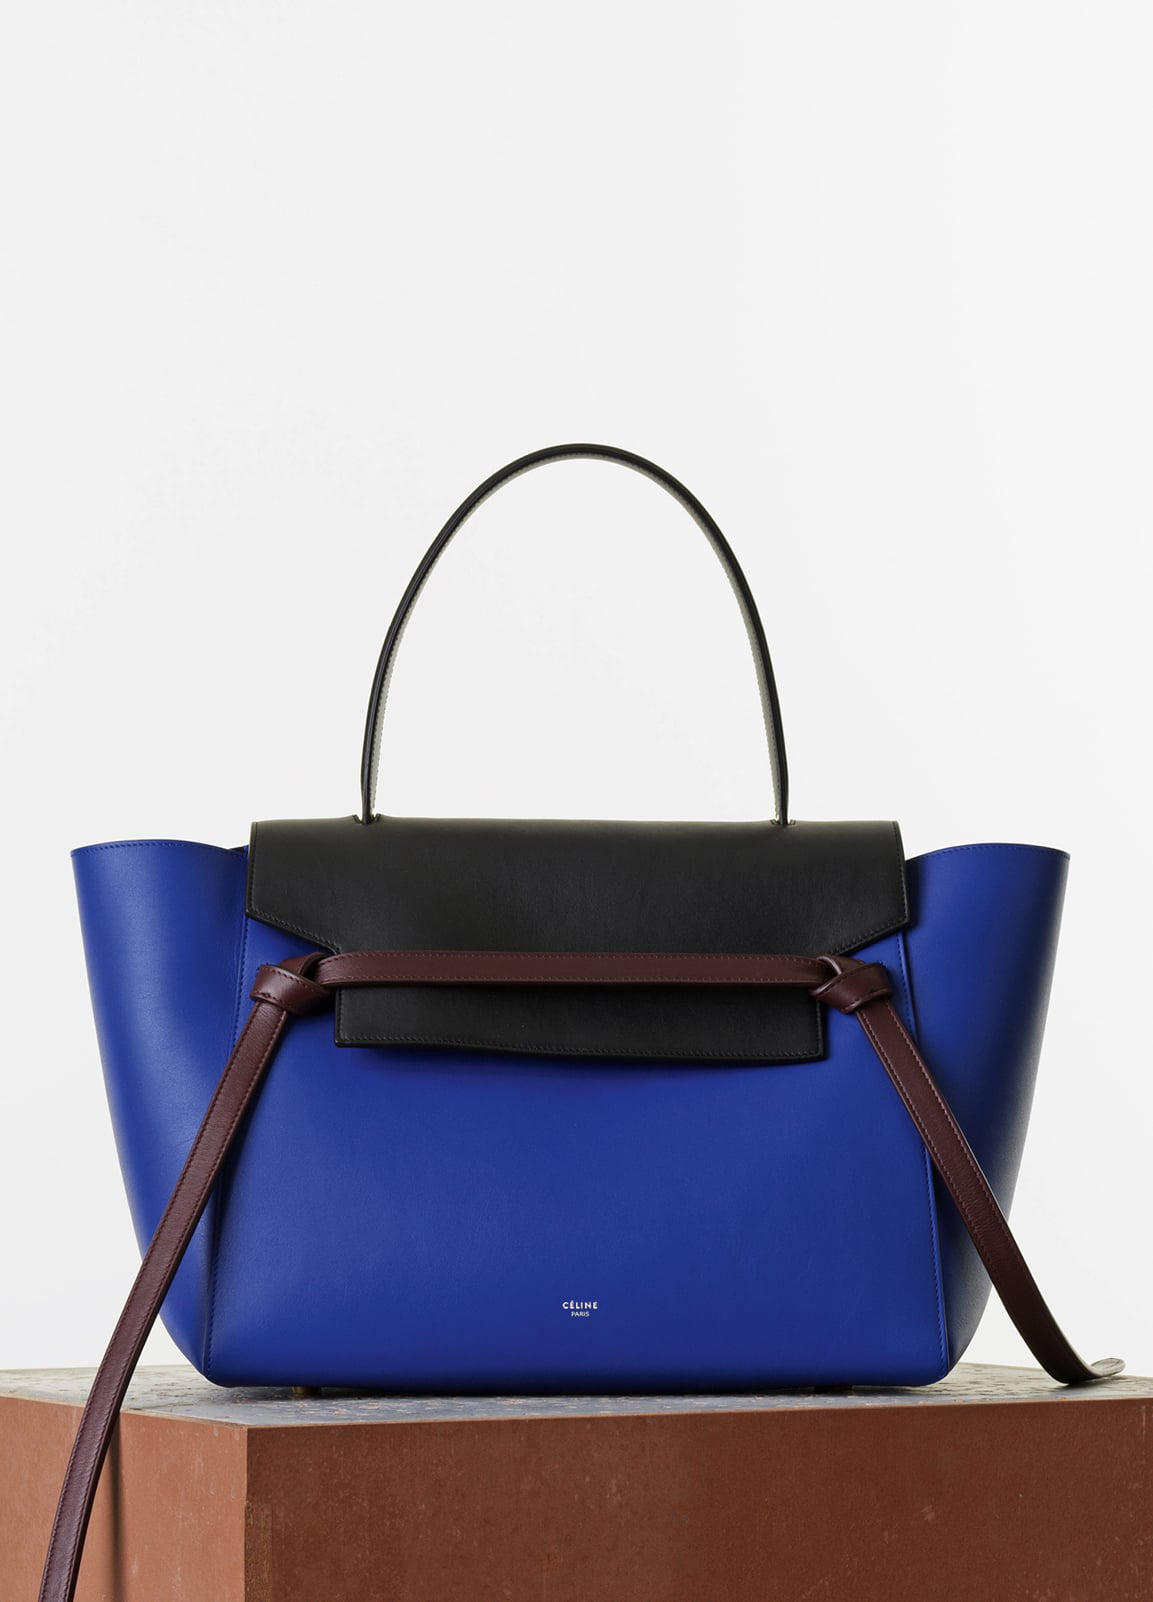 replica celine shoes - Celine Belt Tote Bag Reference Guide featuring Top Handle ...